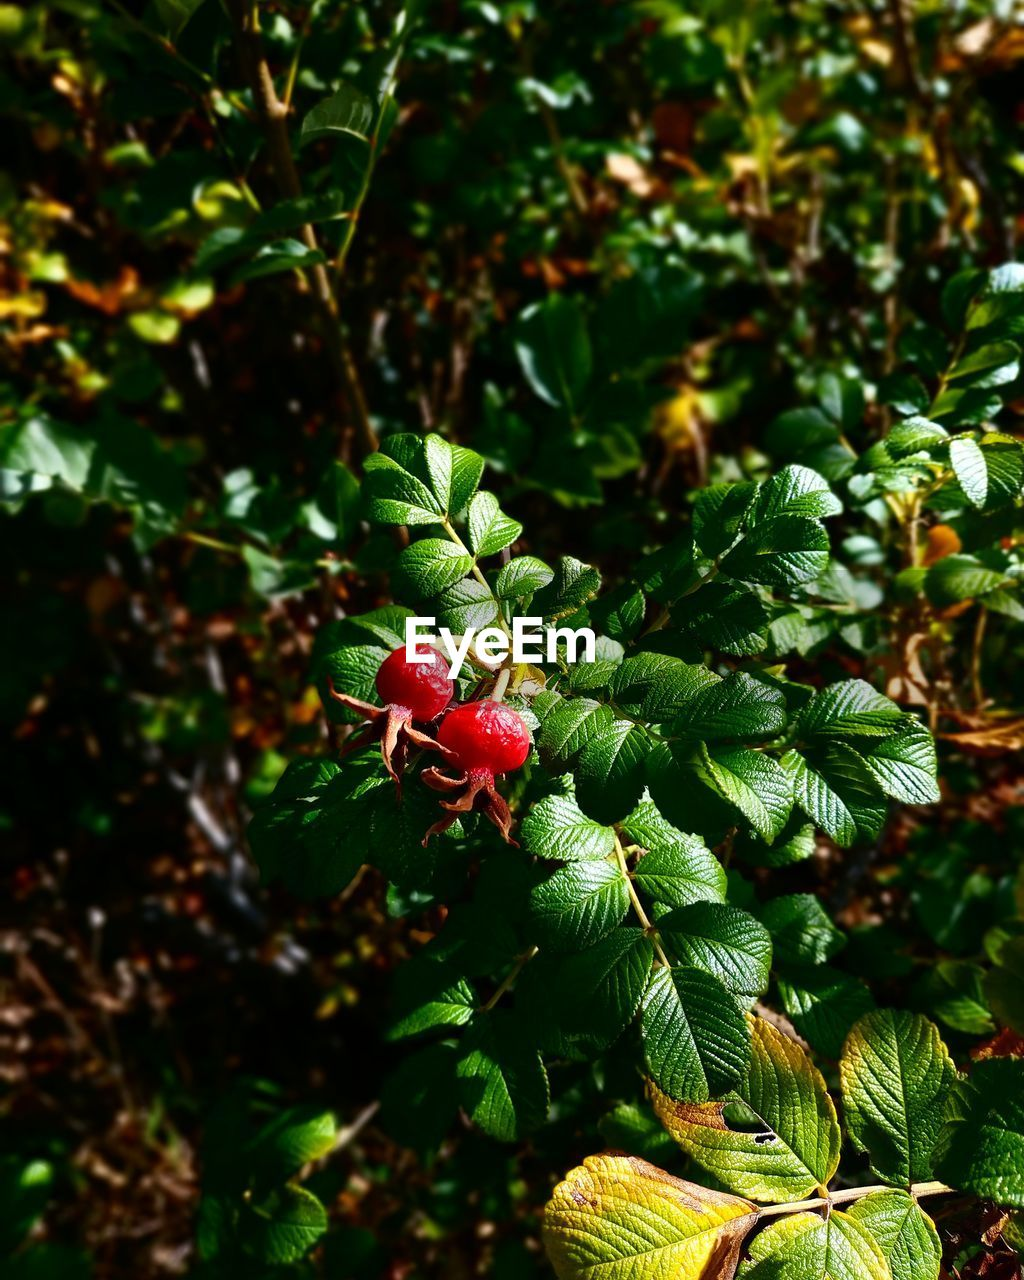 plant, green color, growth, plant part, leaf, beauty in nature, day, no people, nature, animal themes, invertebrate, insect, close-up, animal wildlife, animals in the wild, animal, focus on foreground, one animal, outdoors, red